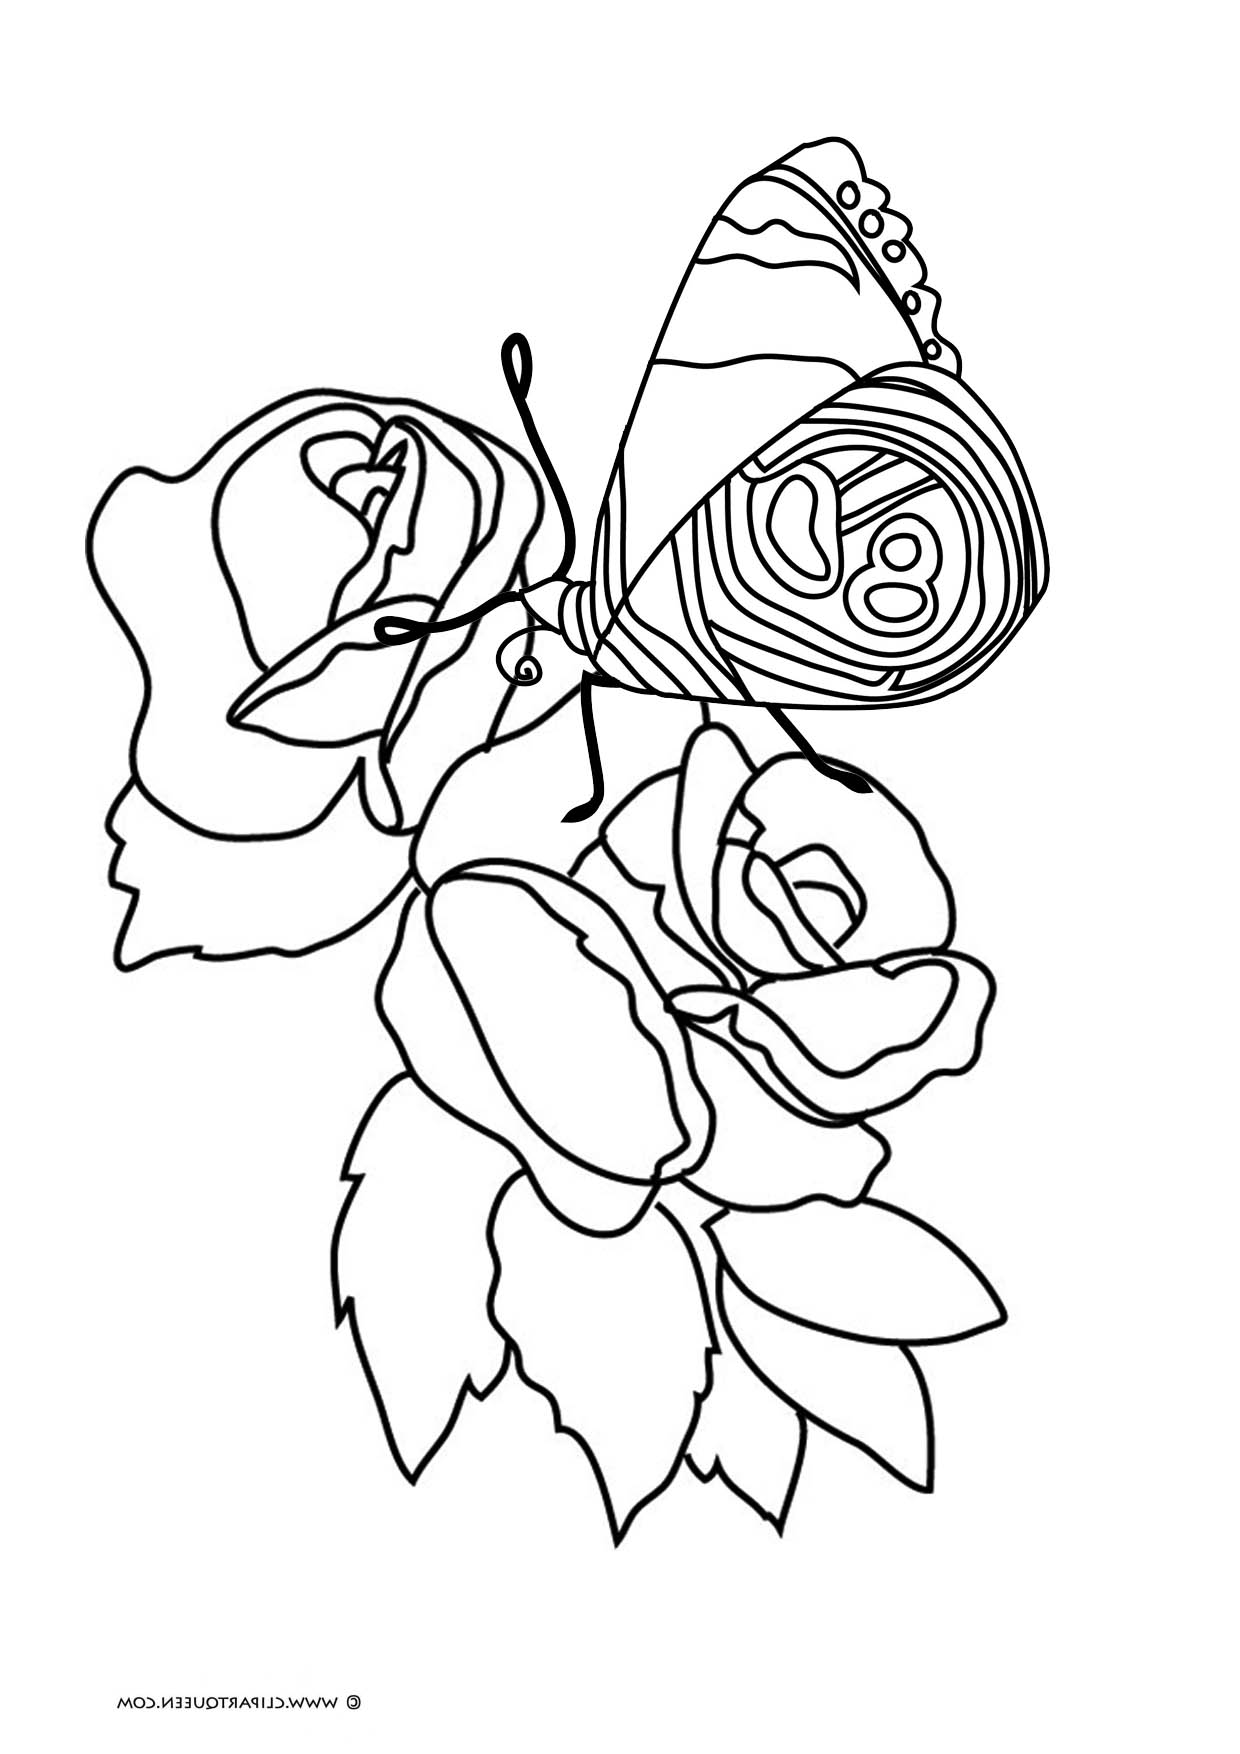 coloring pages of roses and butterflies butterfly coloring pages coloring pages roses of and butterflies